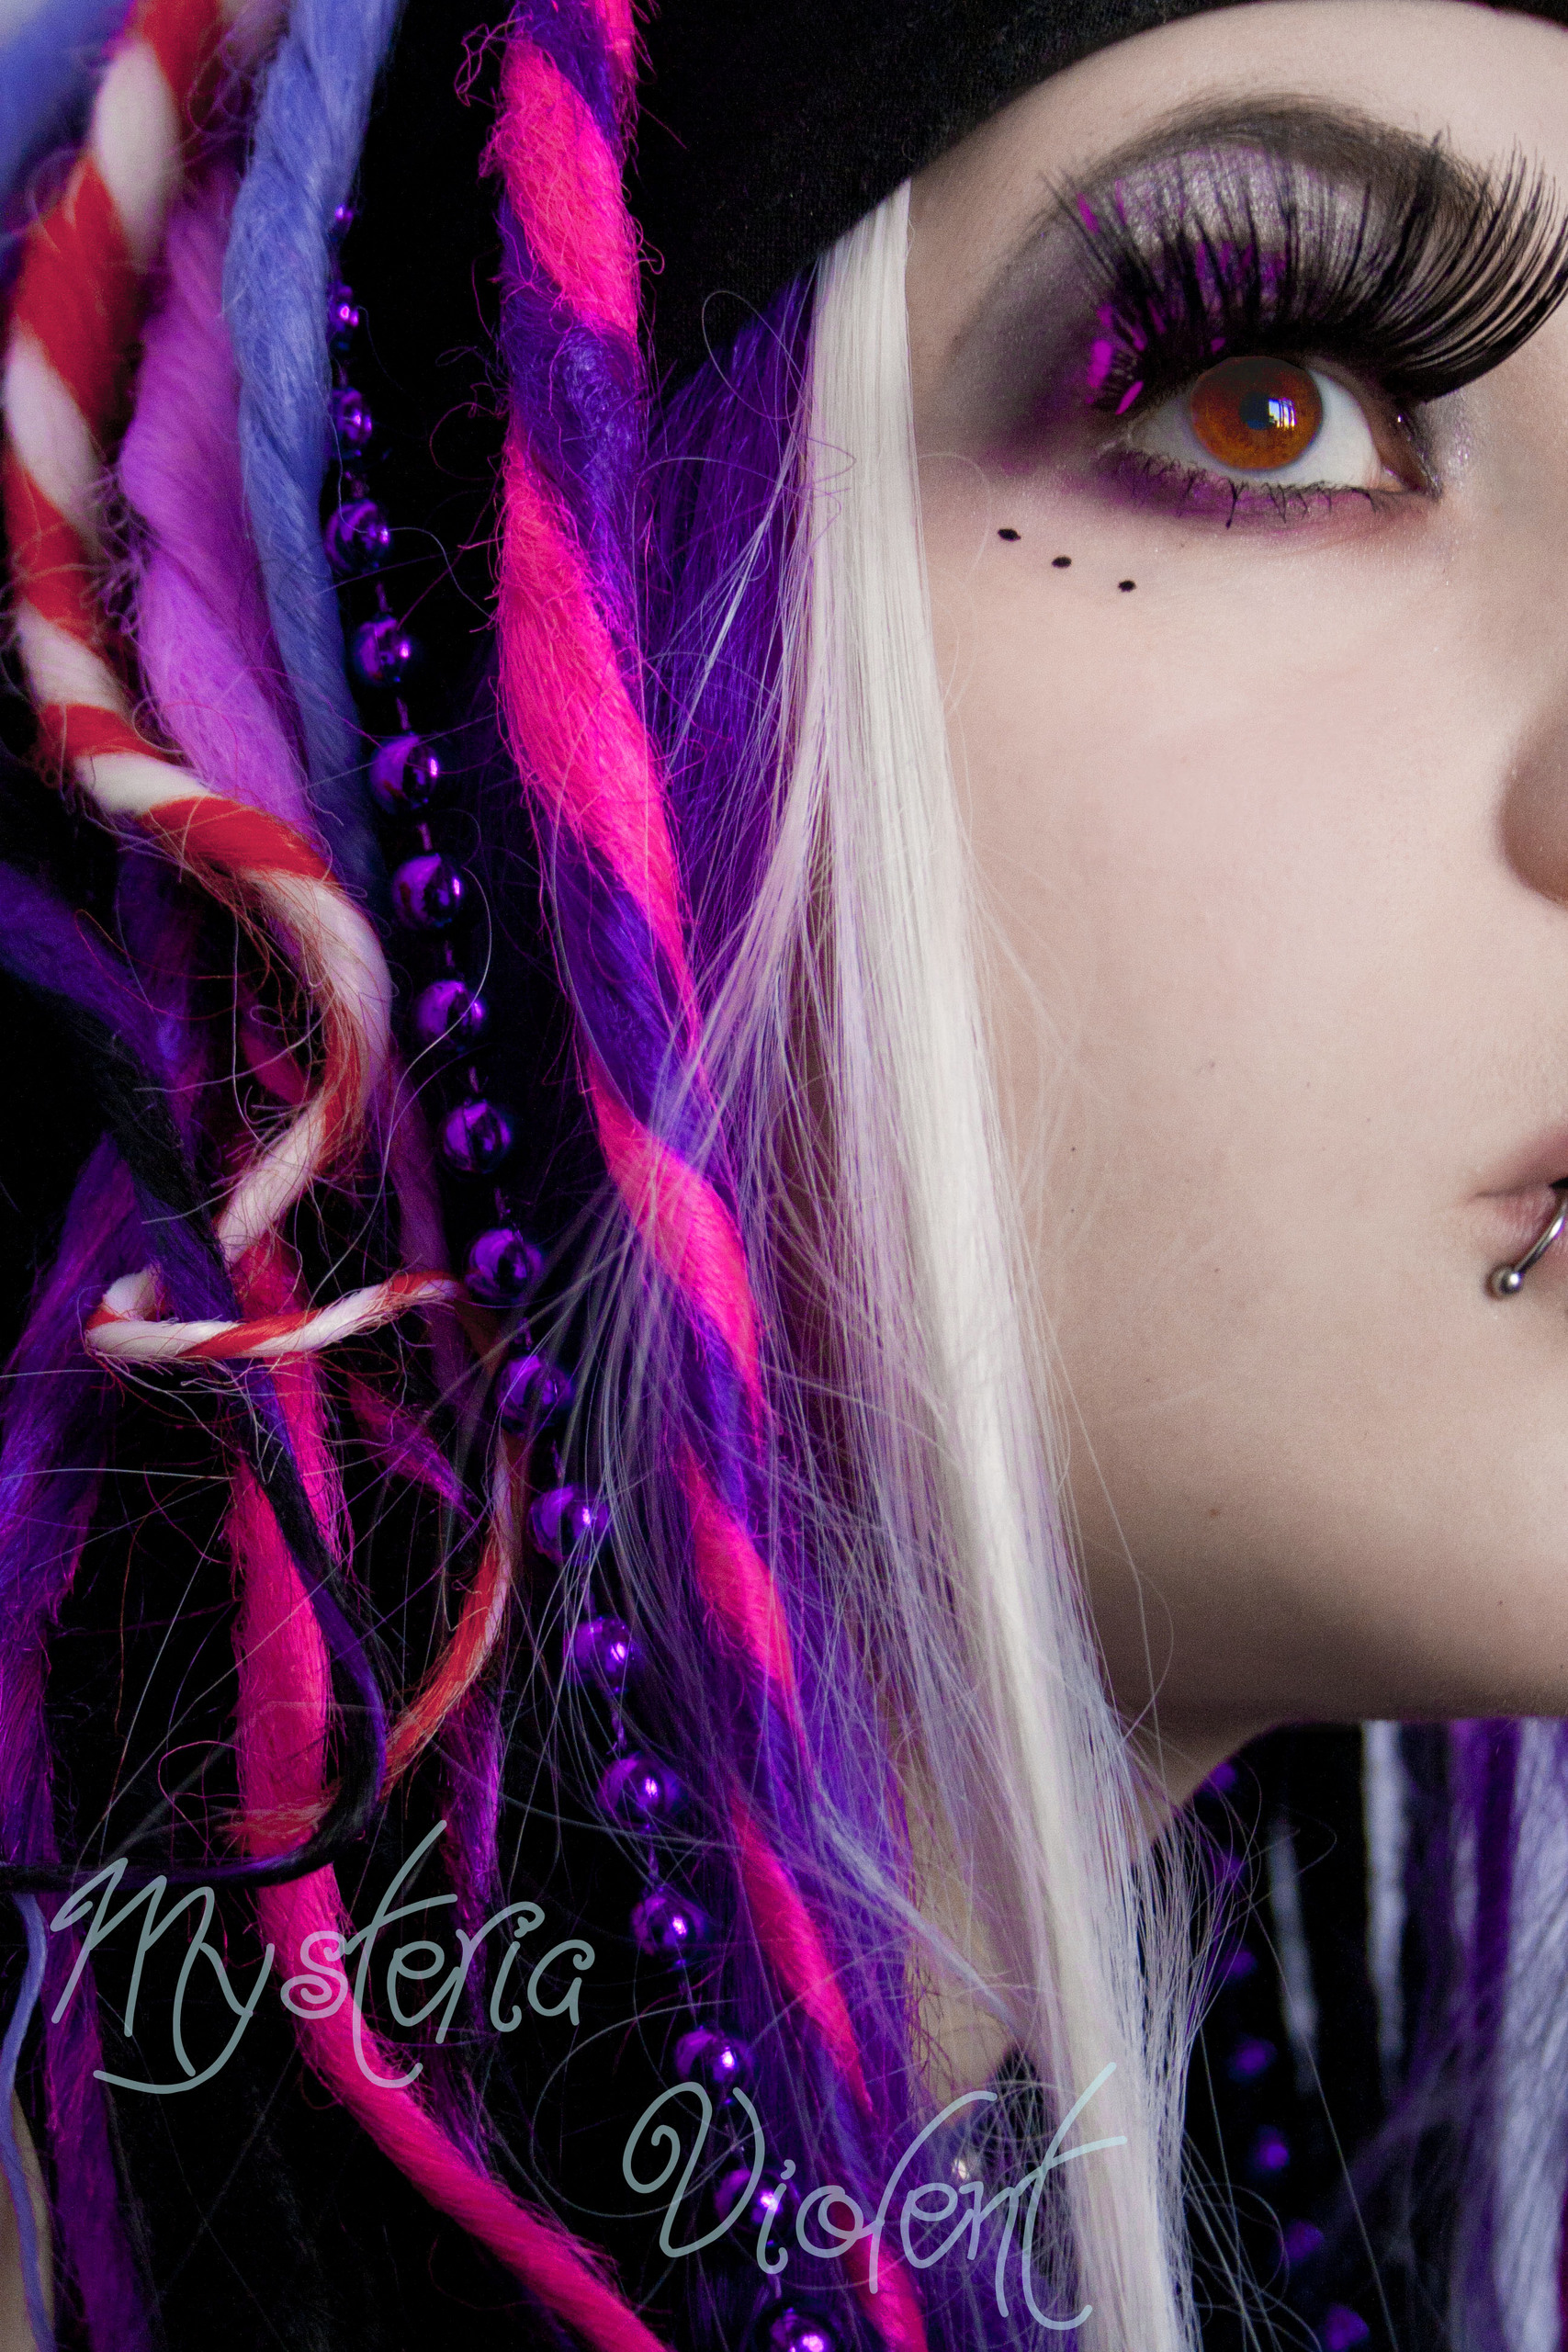 Many styles images candy cyber goth hd wallpaper and background photos